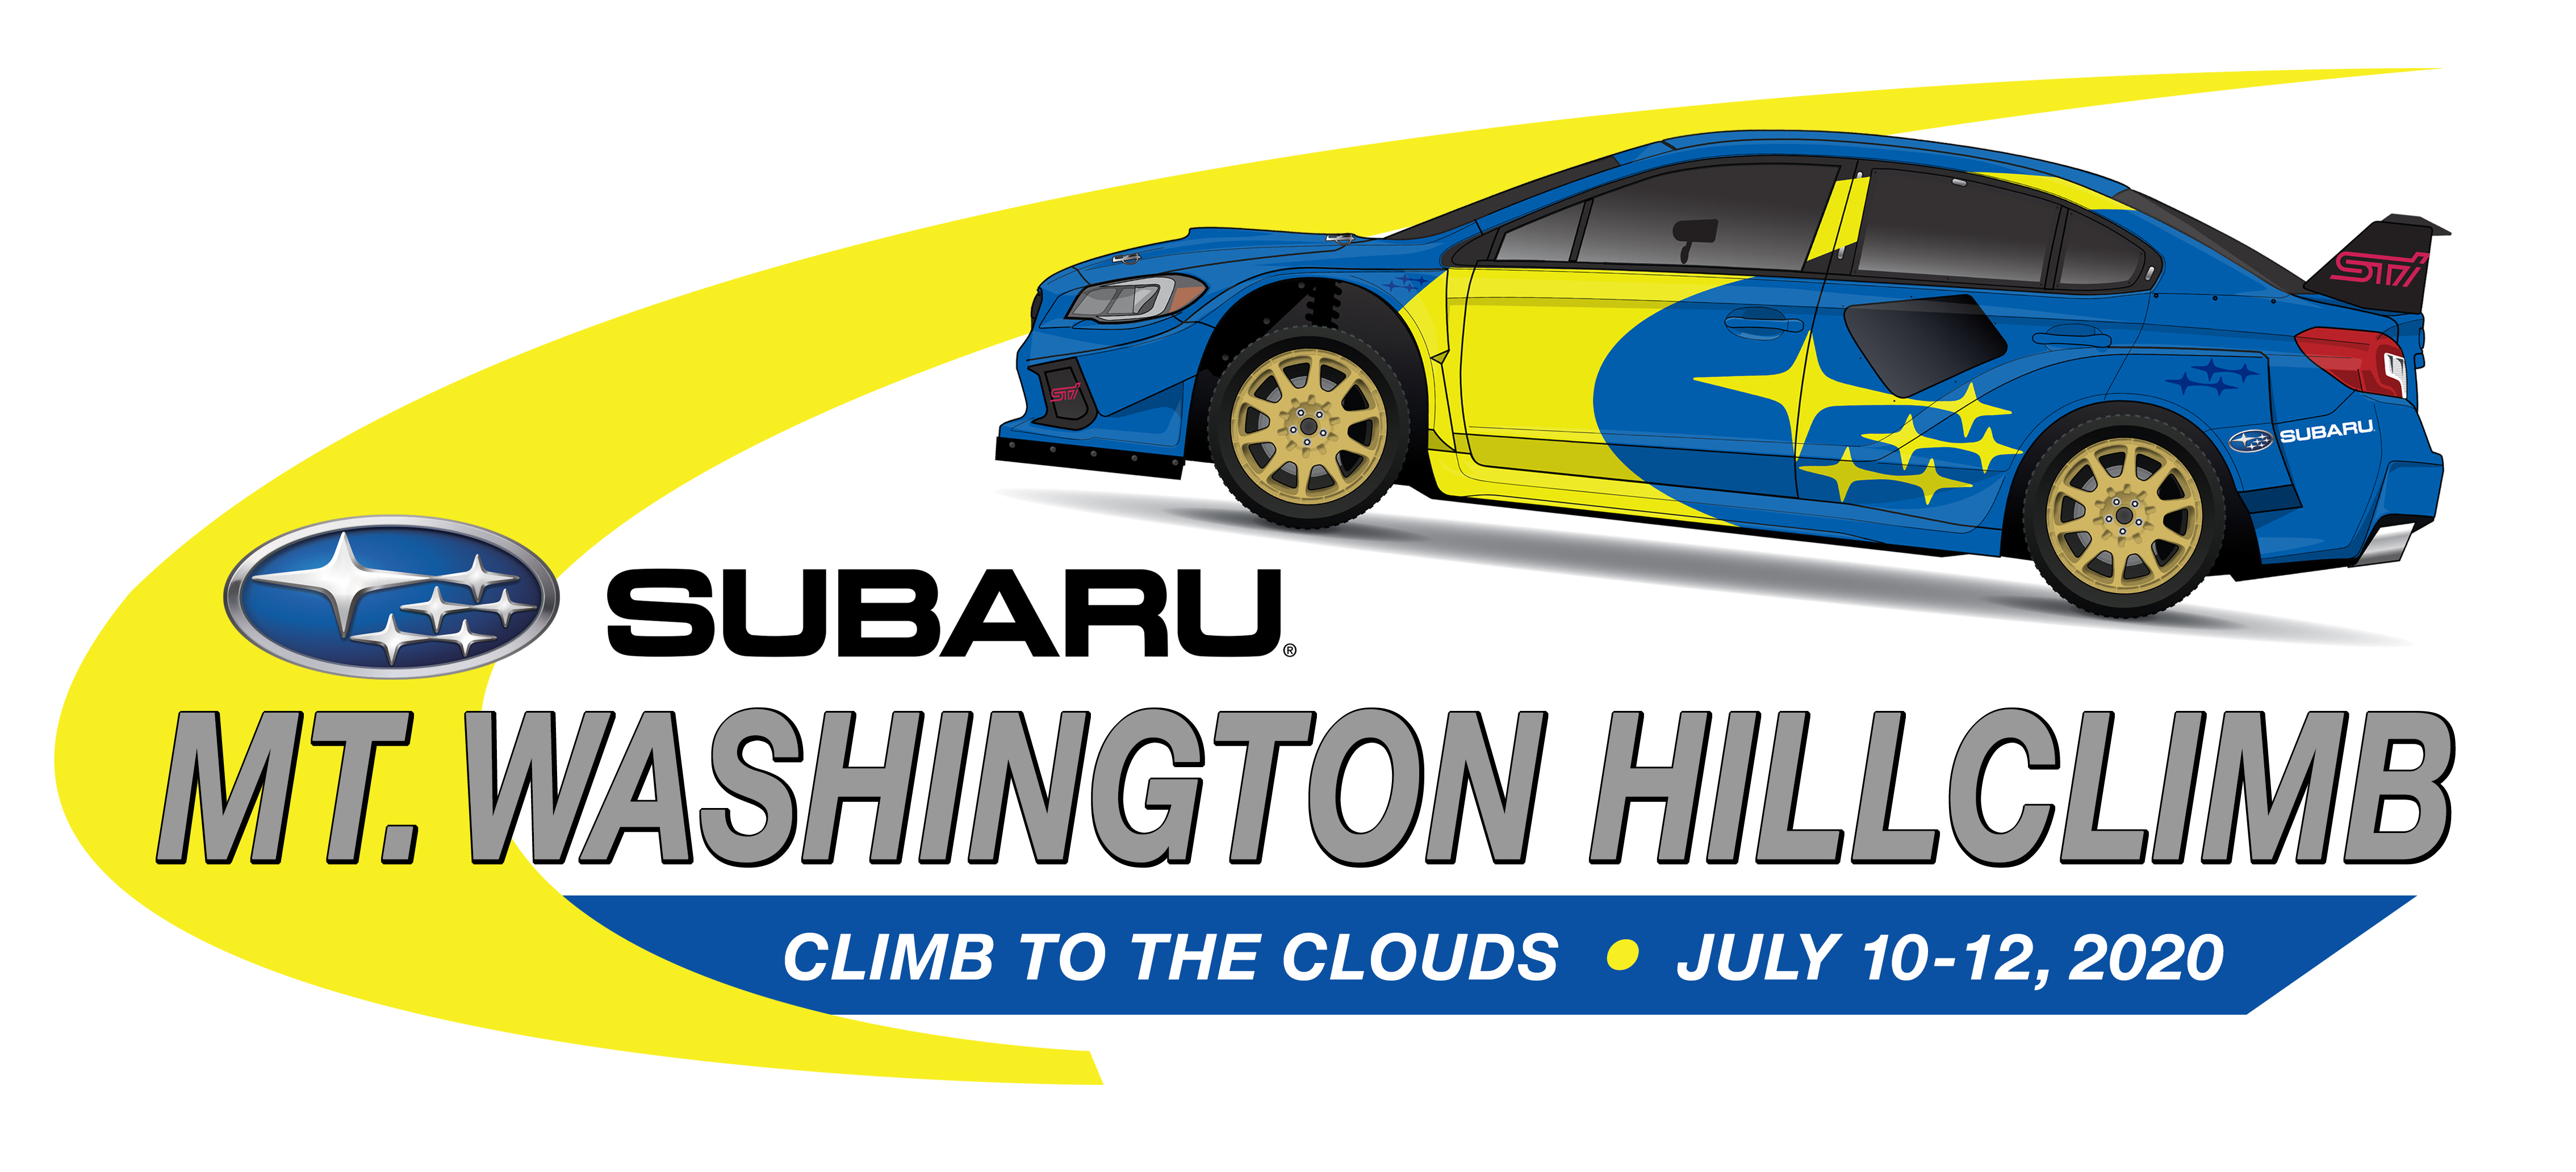 Subaru of America Returns as Title Sponsor of 2020 Mt. Washington Hillclimb